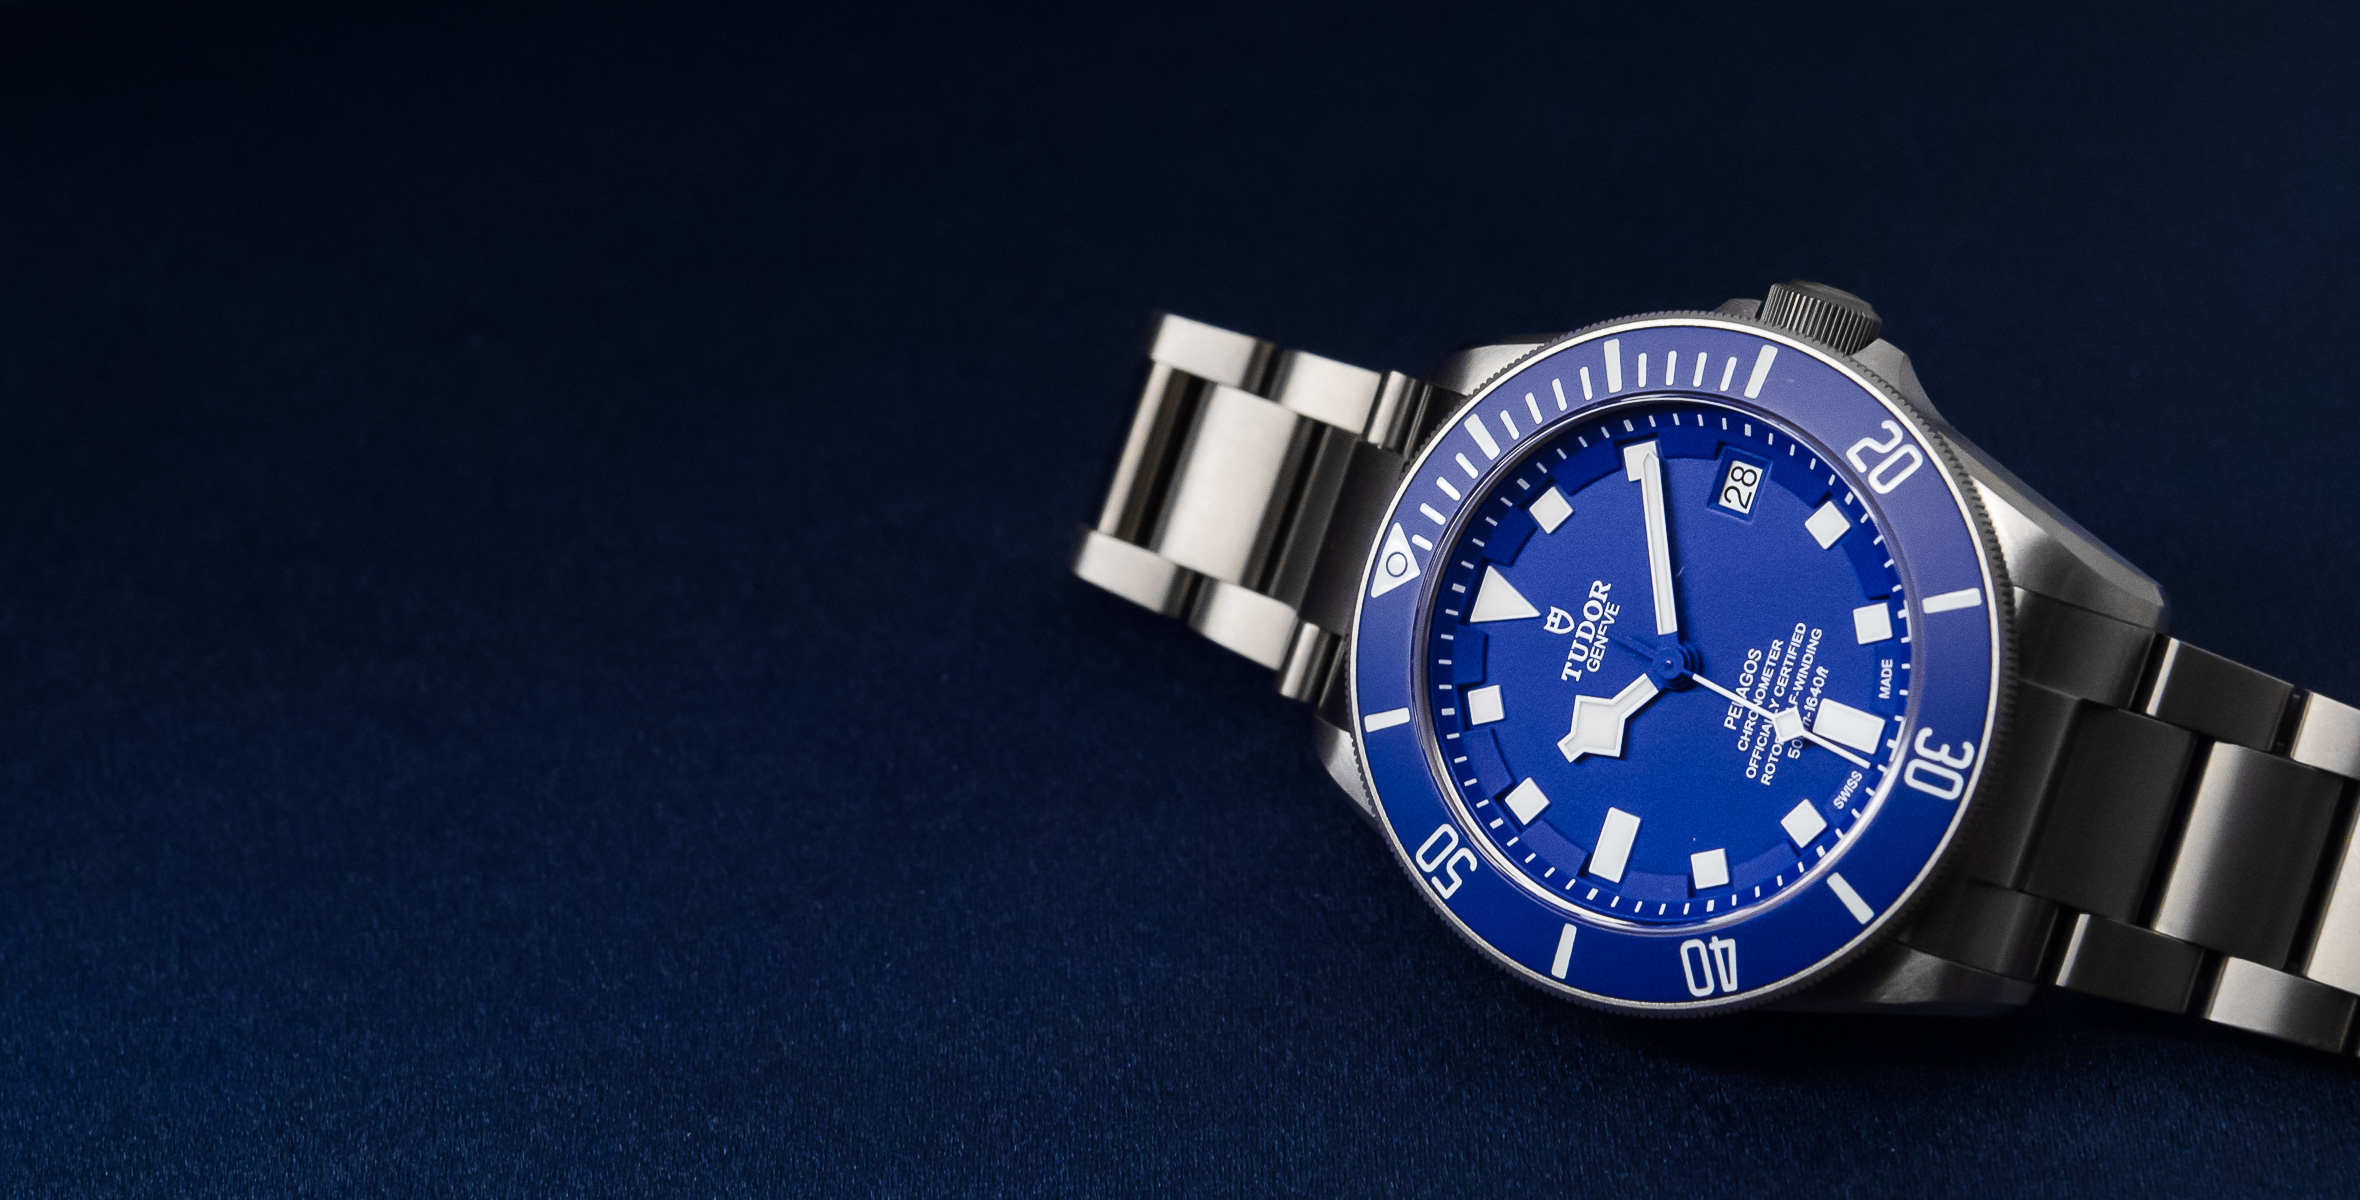 Tudor Pelagos Blue Ref 25600tb Handson Review